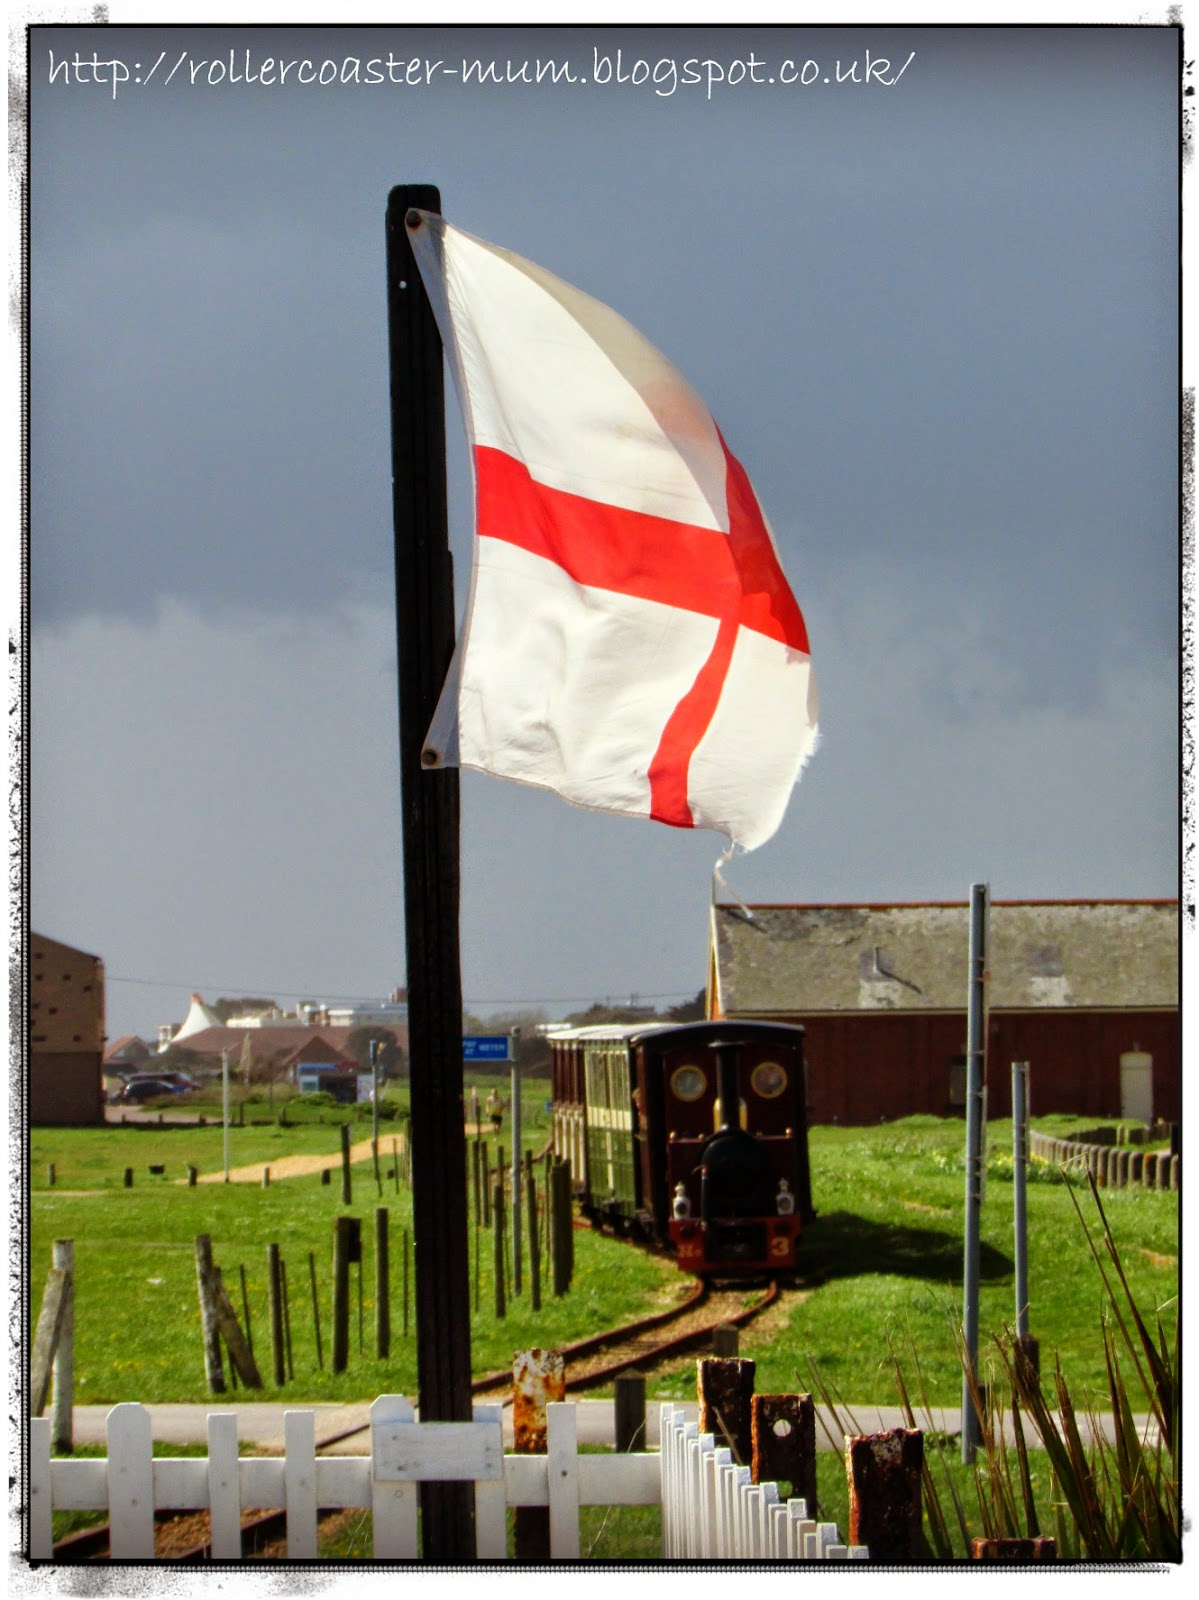 St. George's flag, Hayling Seaside train